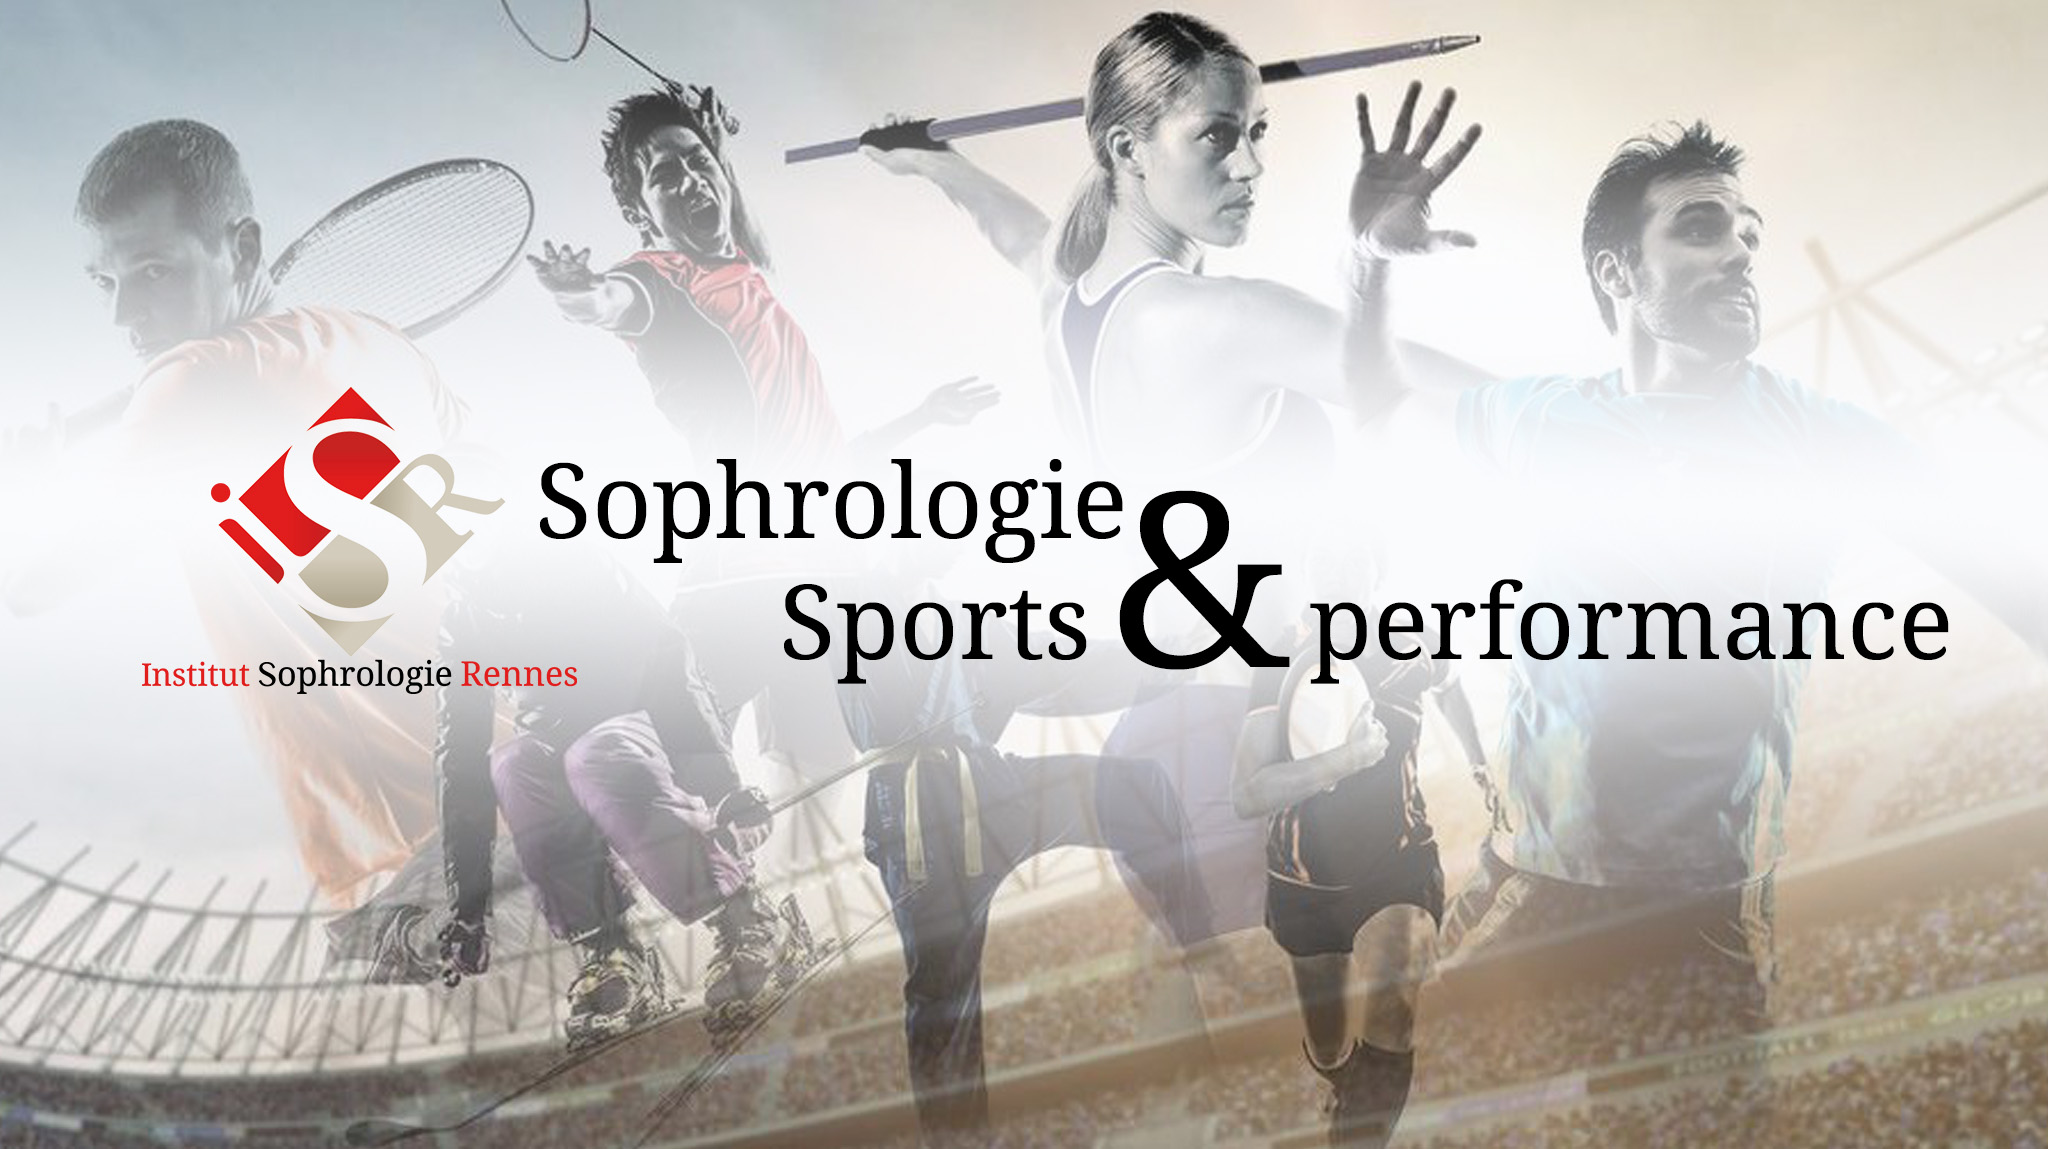 Sophrologie Sports & performance